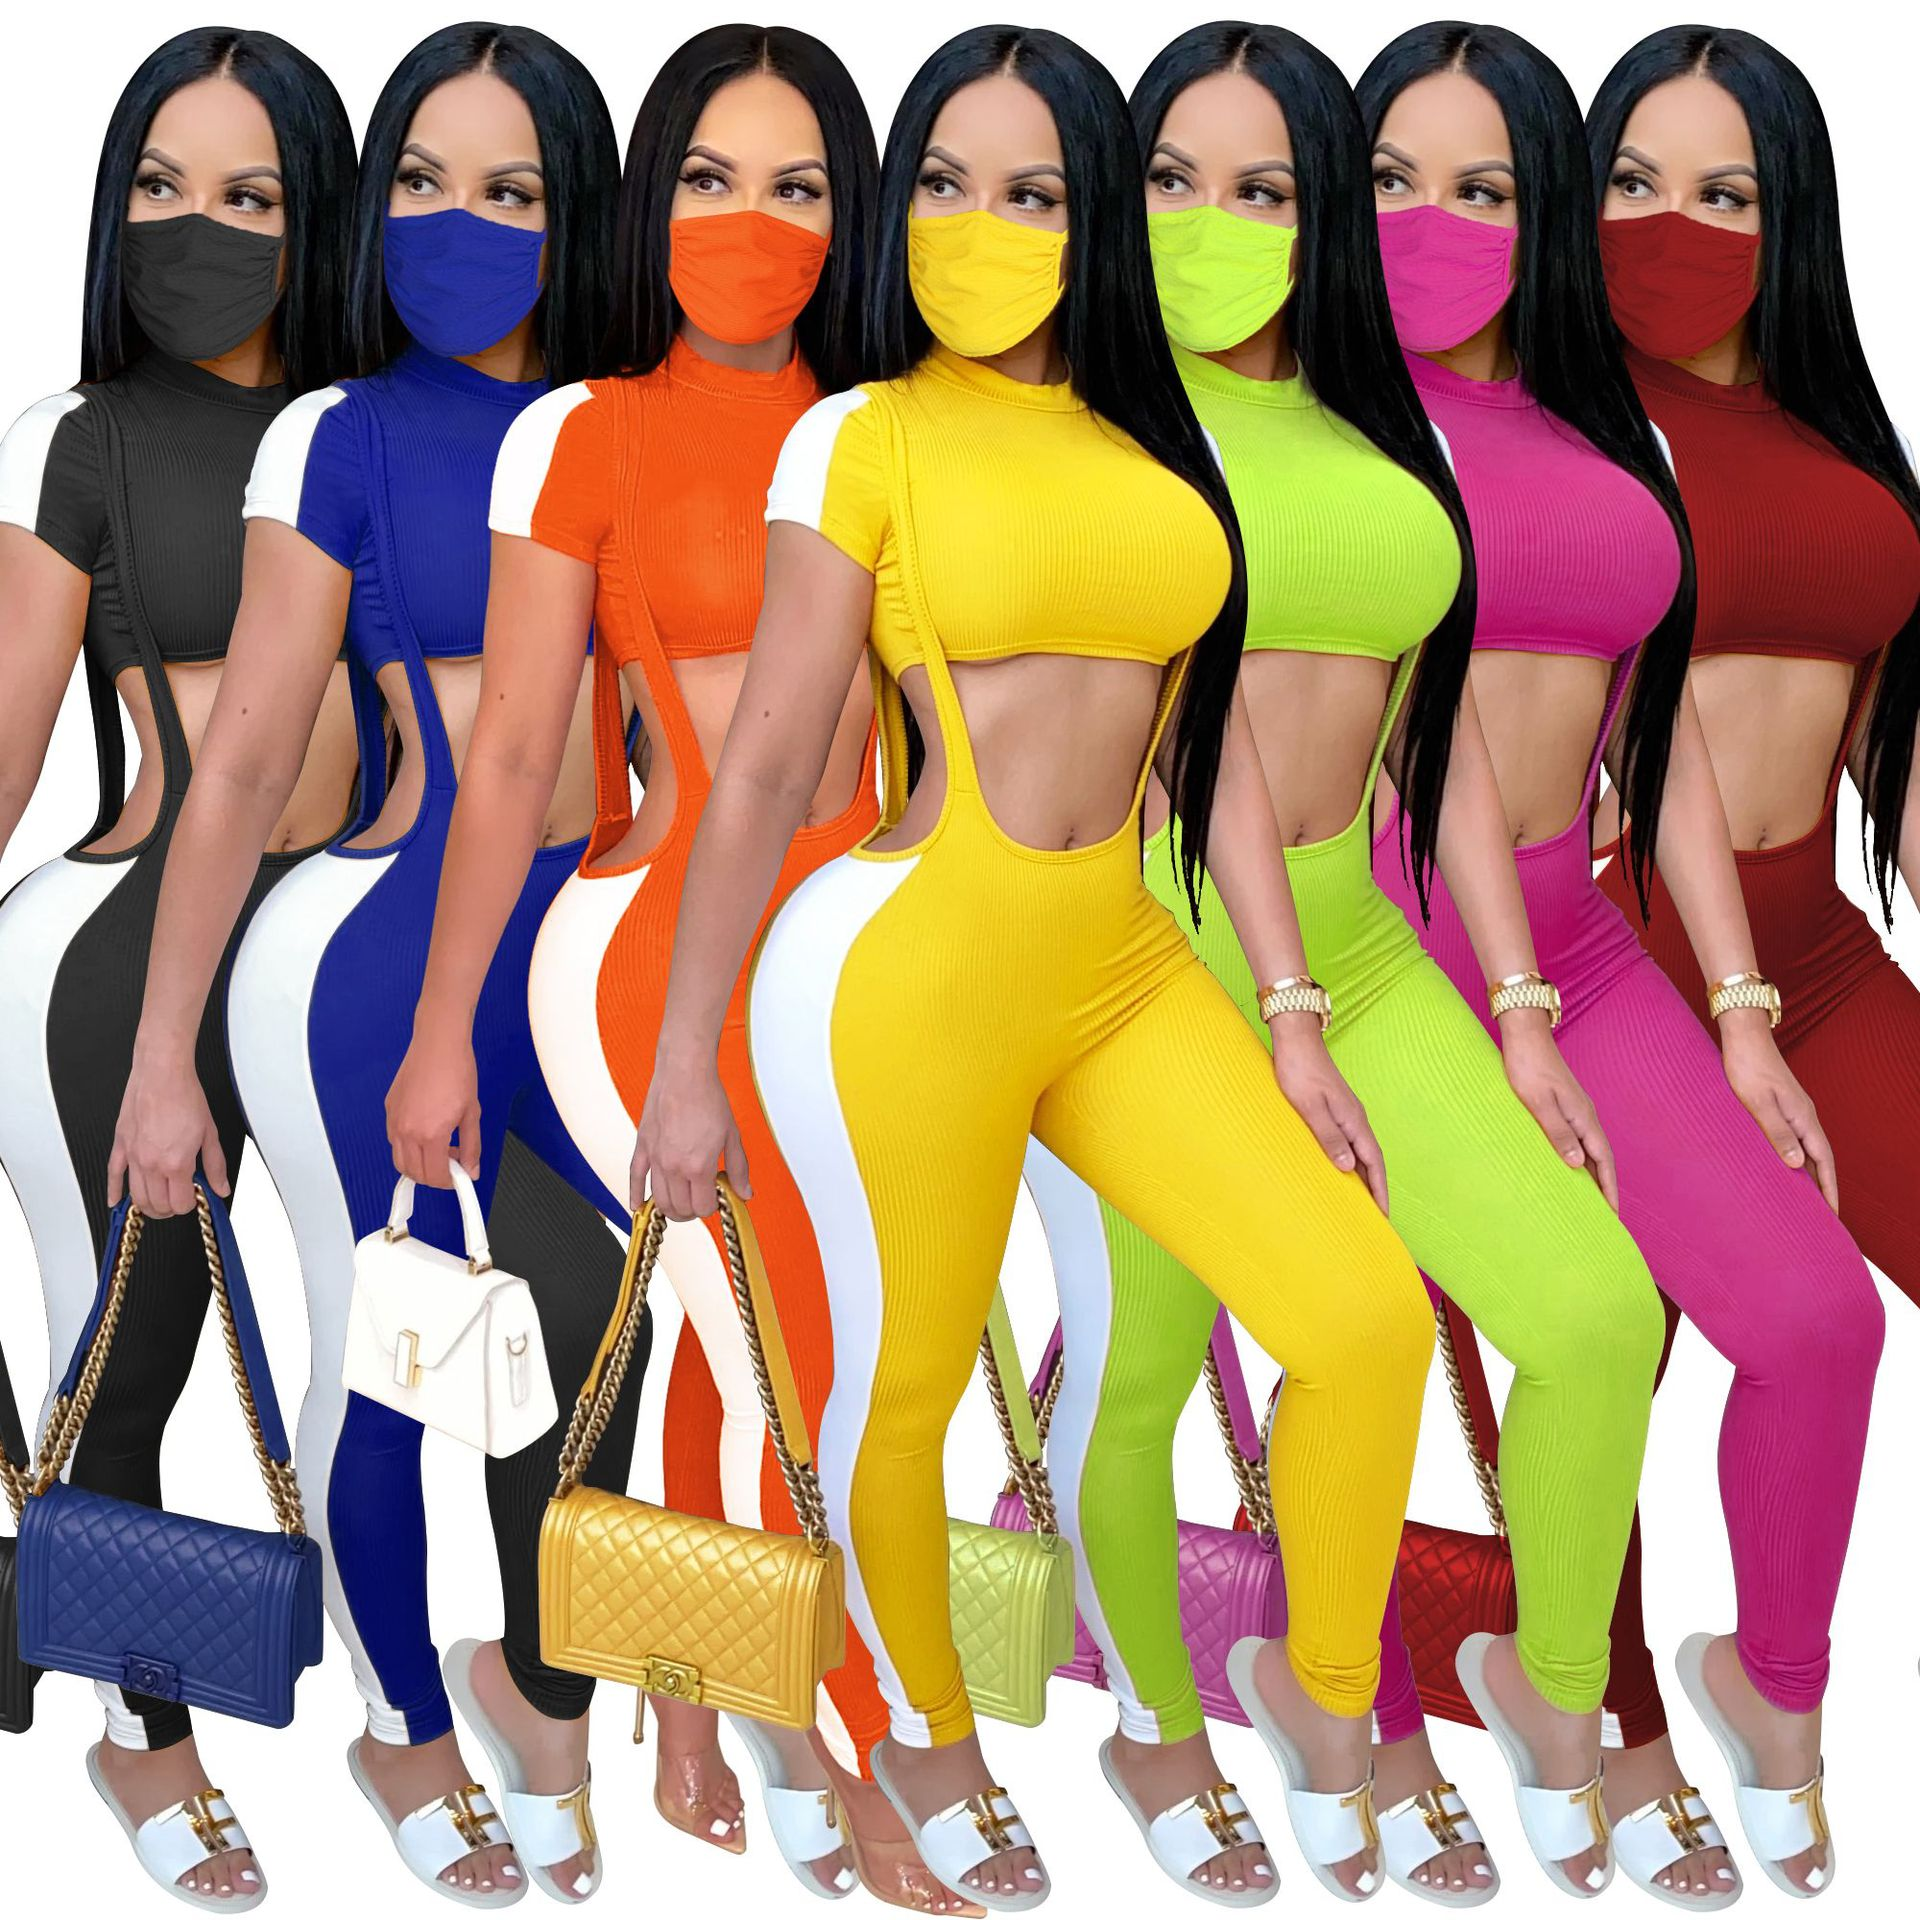 Hot selling European and American women's sling strap tights waistless short top fashion suit + mask included